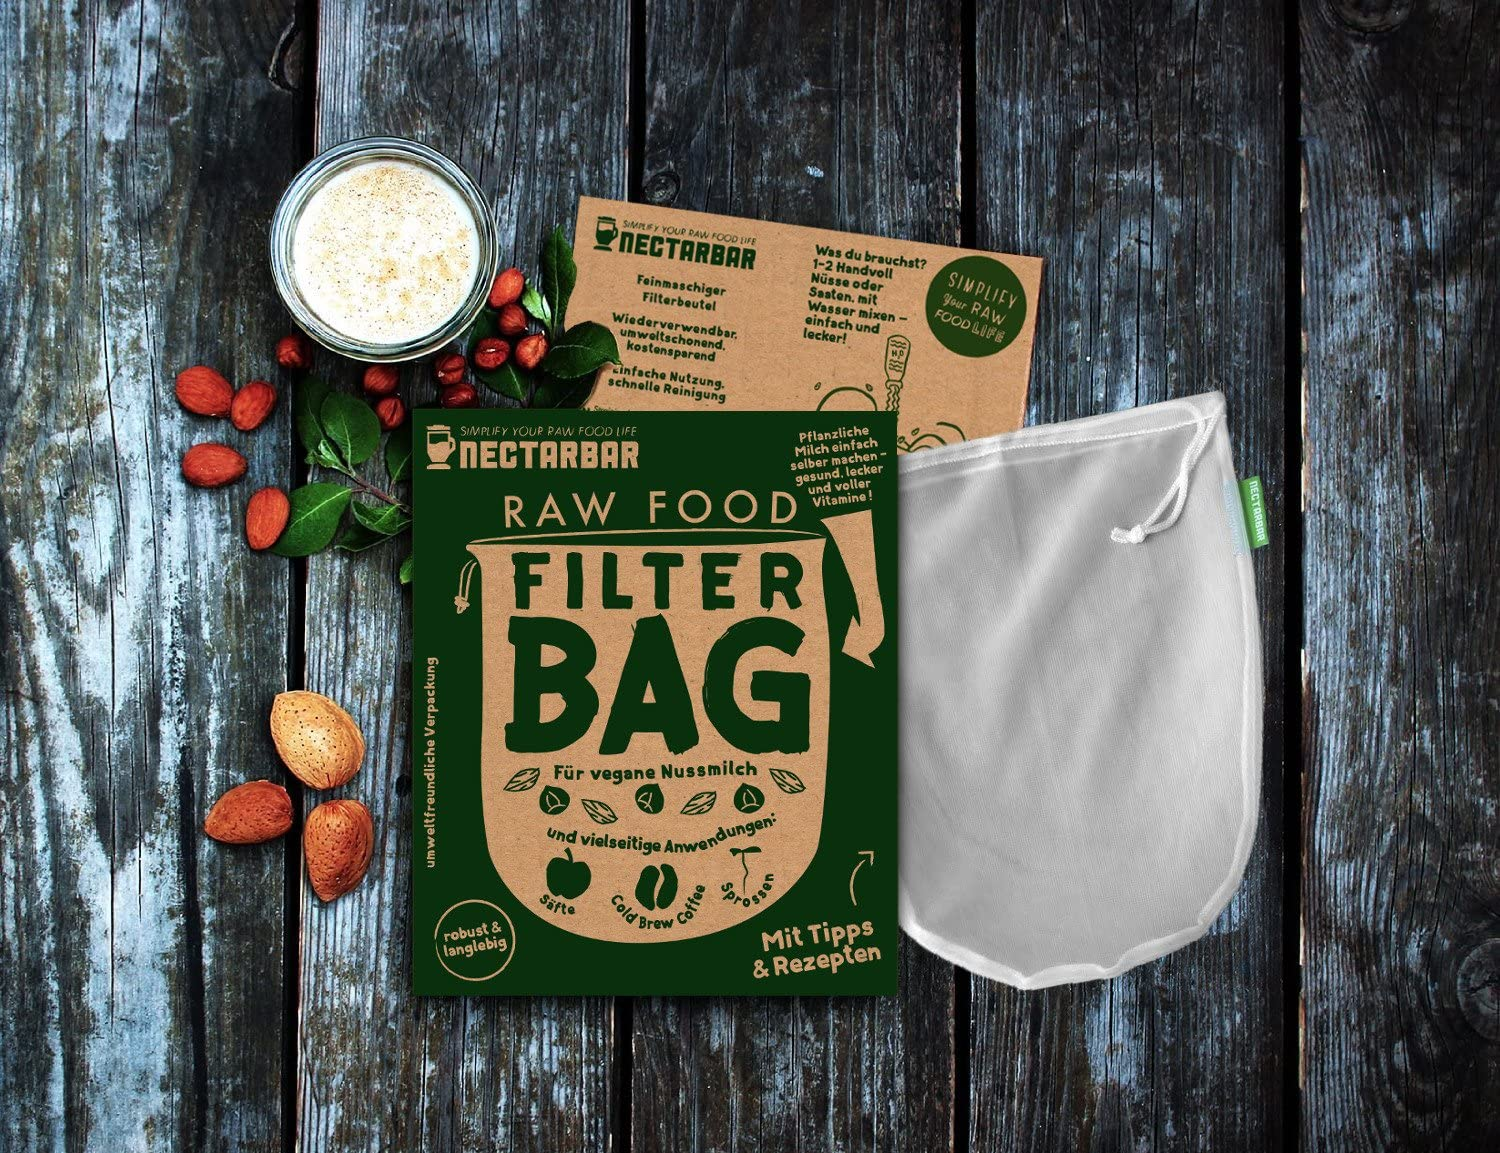 BOLSA DE LECHE VEGETAL - NECTARBAR (Eco) RAW FOOD FILTER BAG ...